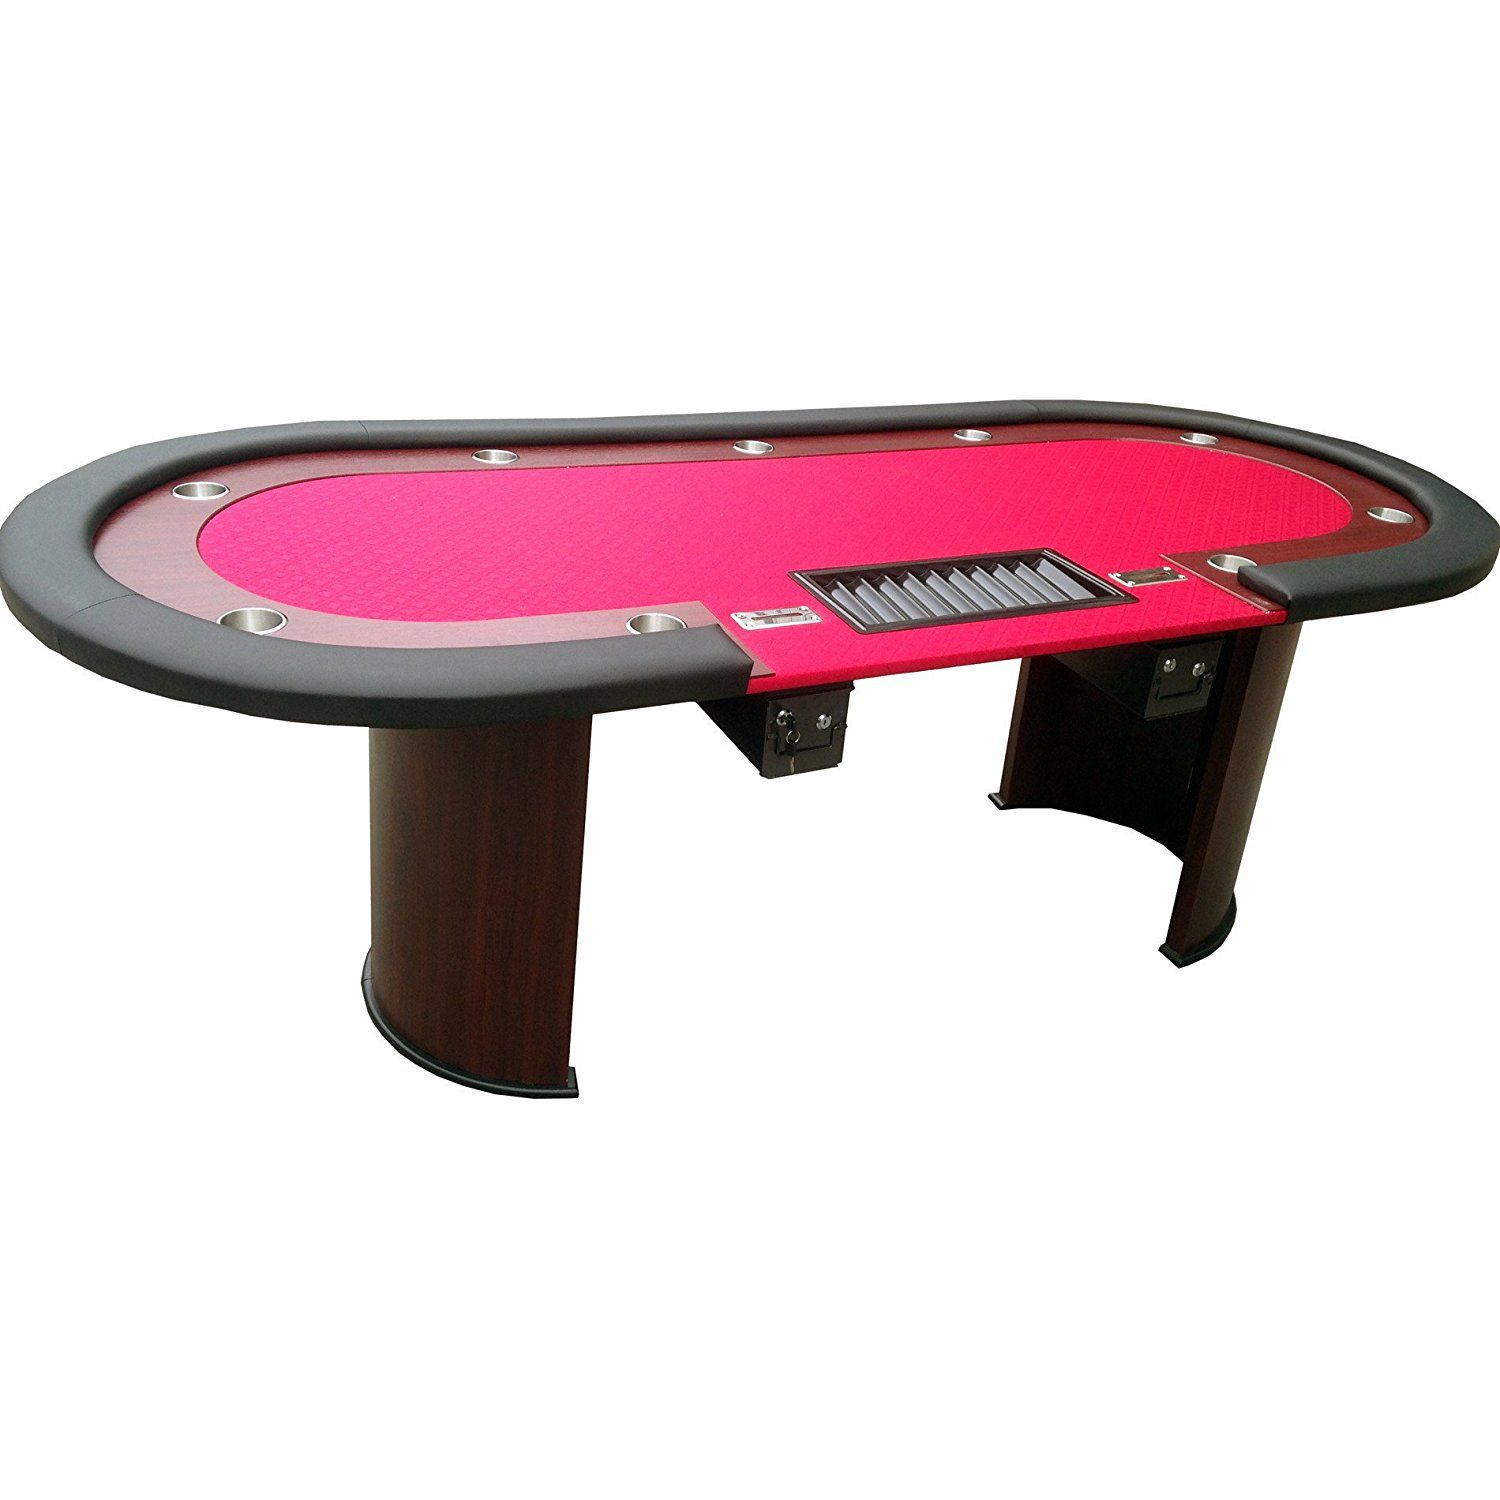 Professional Solid Wood Poker Table 10 Players Dining Top With One Steel Toke Drop Box Best Poker Table 96 X 43 X 30 I Poker Table Poker Poker Table Top